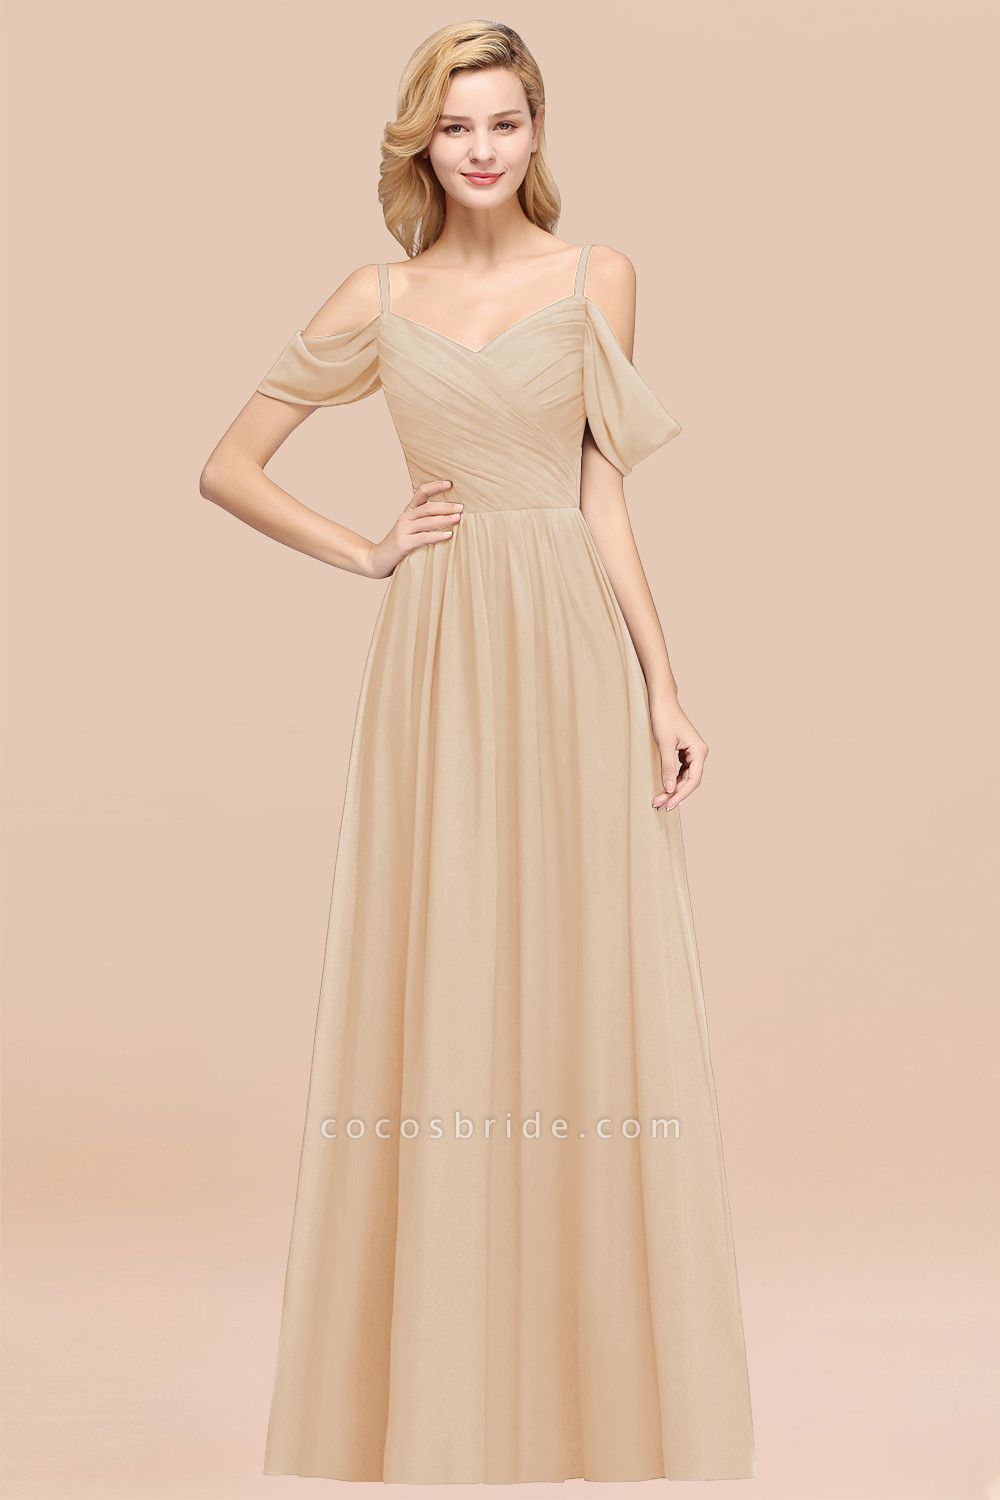 A-Line Chiffon V-Neck Spaghetti Straps Short-Sleeves Floor-Length Bridesmaid Dresses with Ruffles